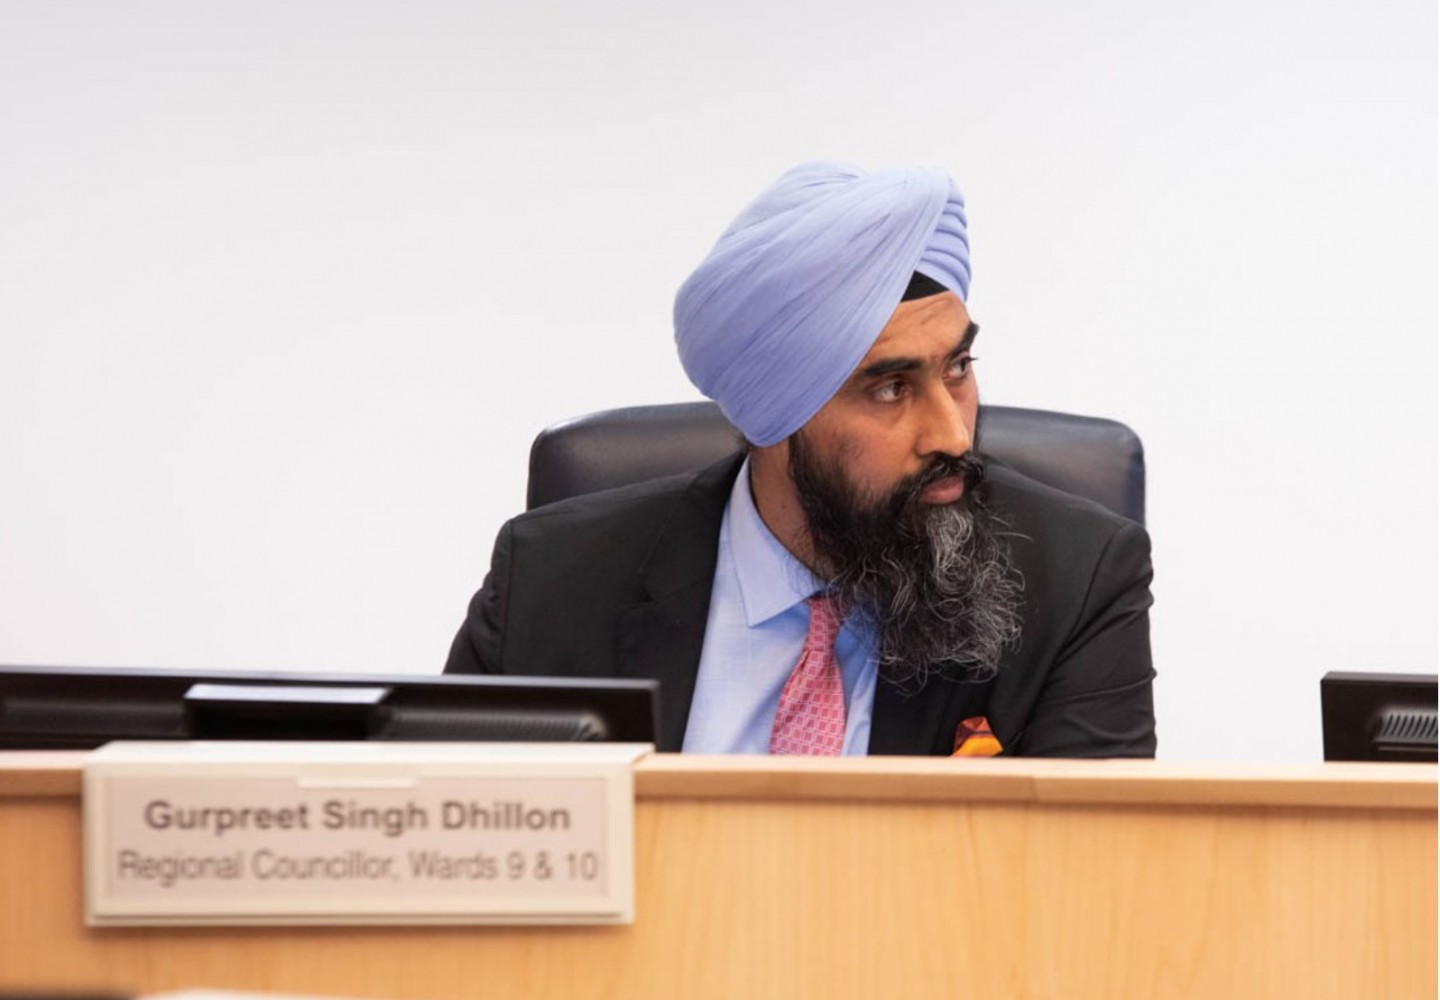 Court upholds most of commissioner's findings against Gurpreet Dhillon in sexual misconduct case